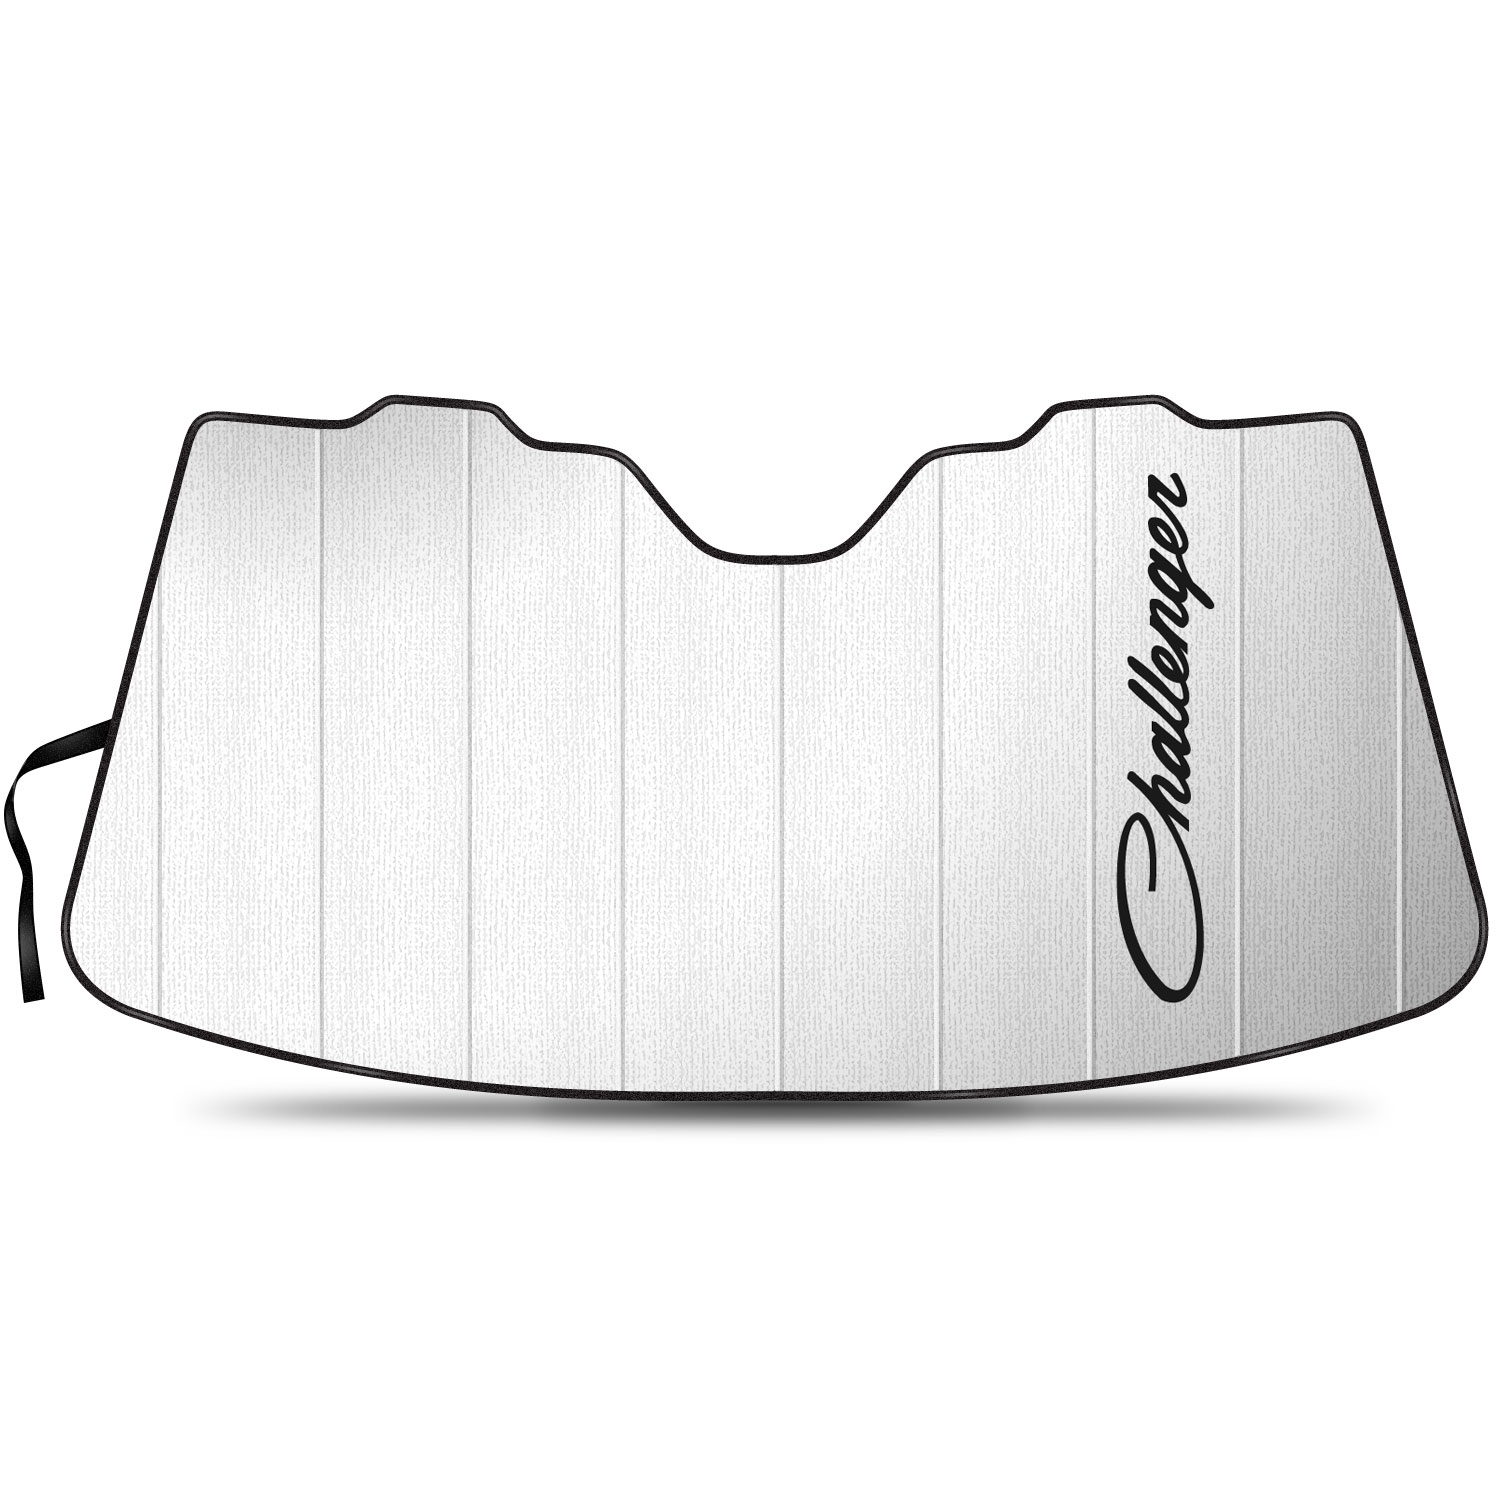 "Dodge Challenger Classic Logo 55-1/2""x 27"" Stand Up Universal Fit Auto Windshield Sun Shade"